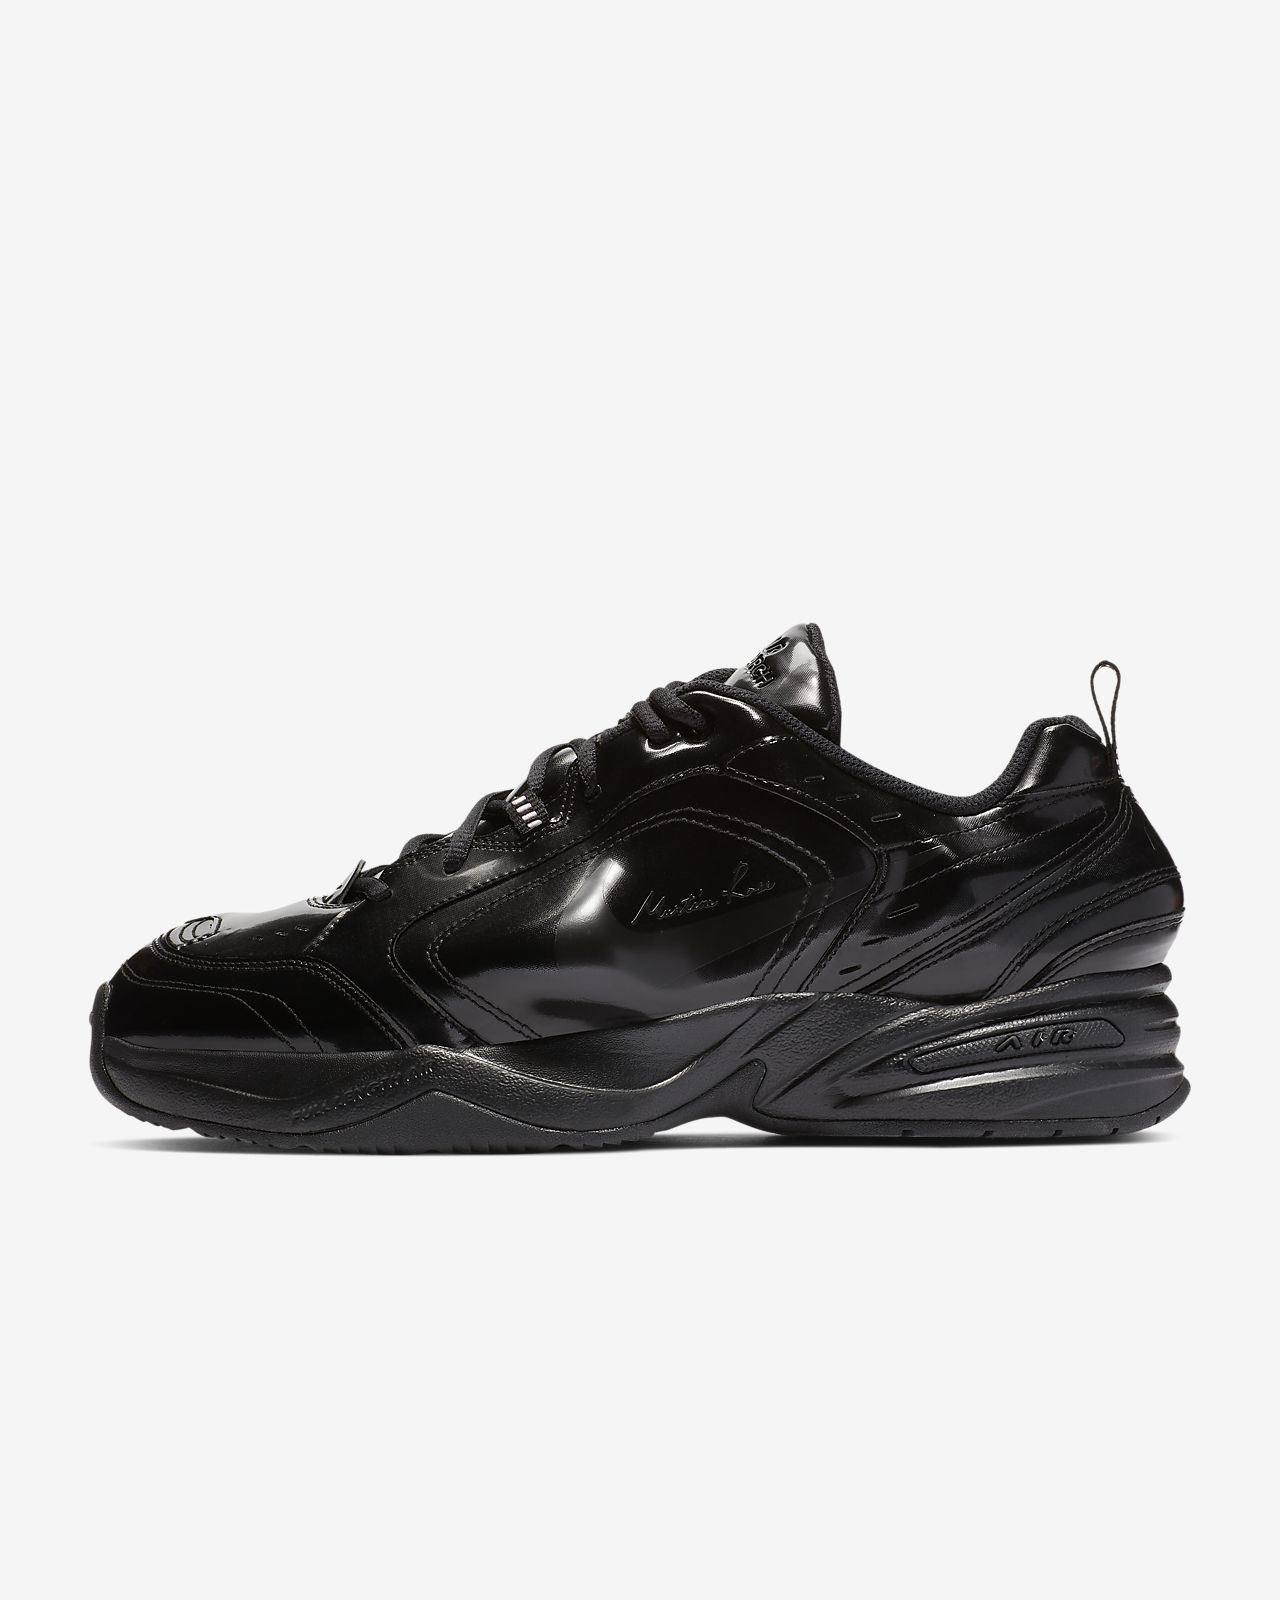 b67c665b248a Nike x Martine Rose Air Monarch IV Shoe. Nike.com LU